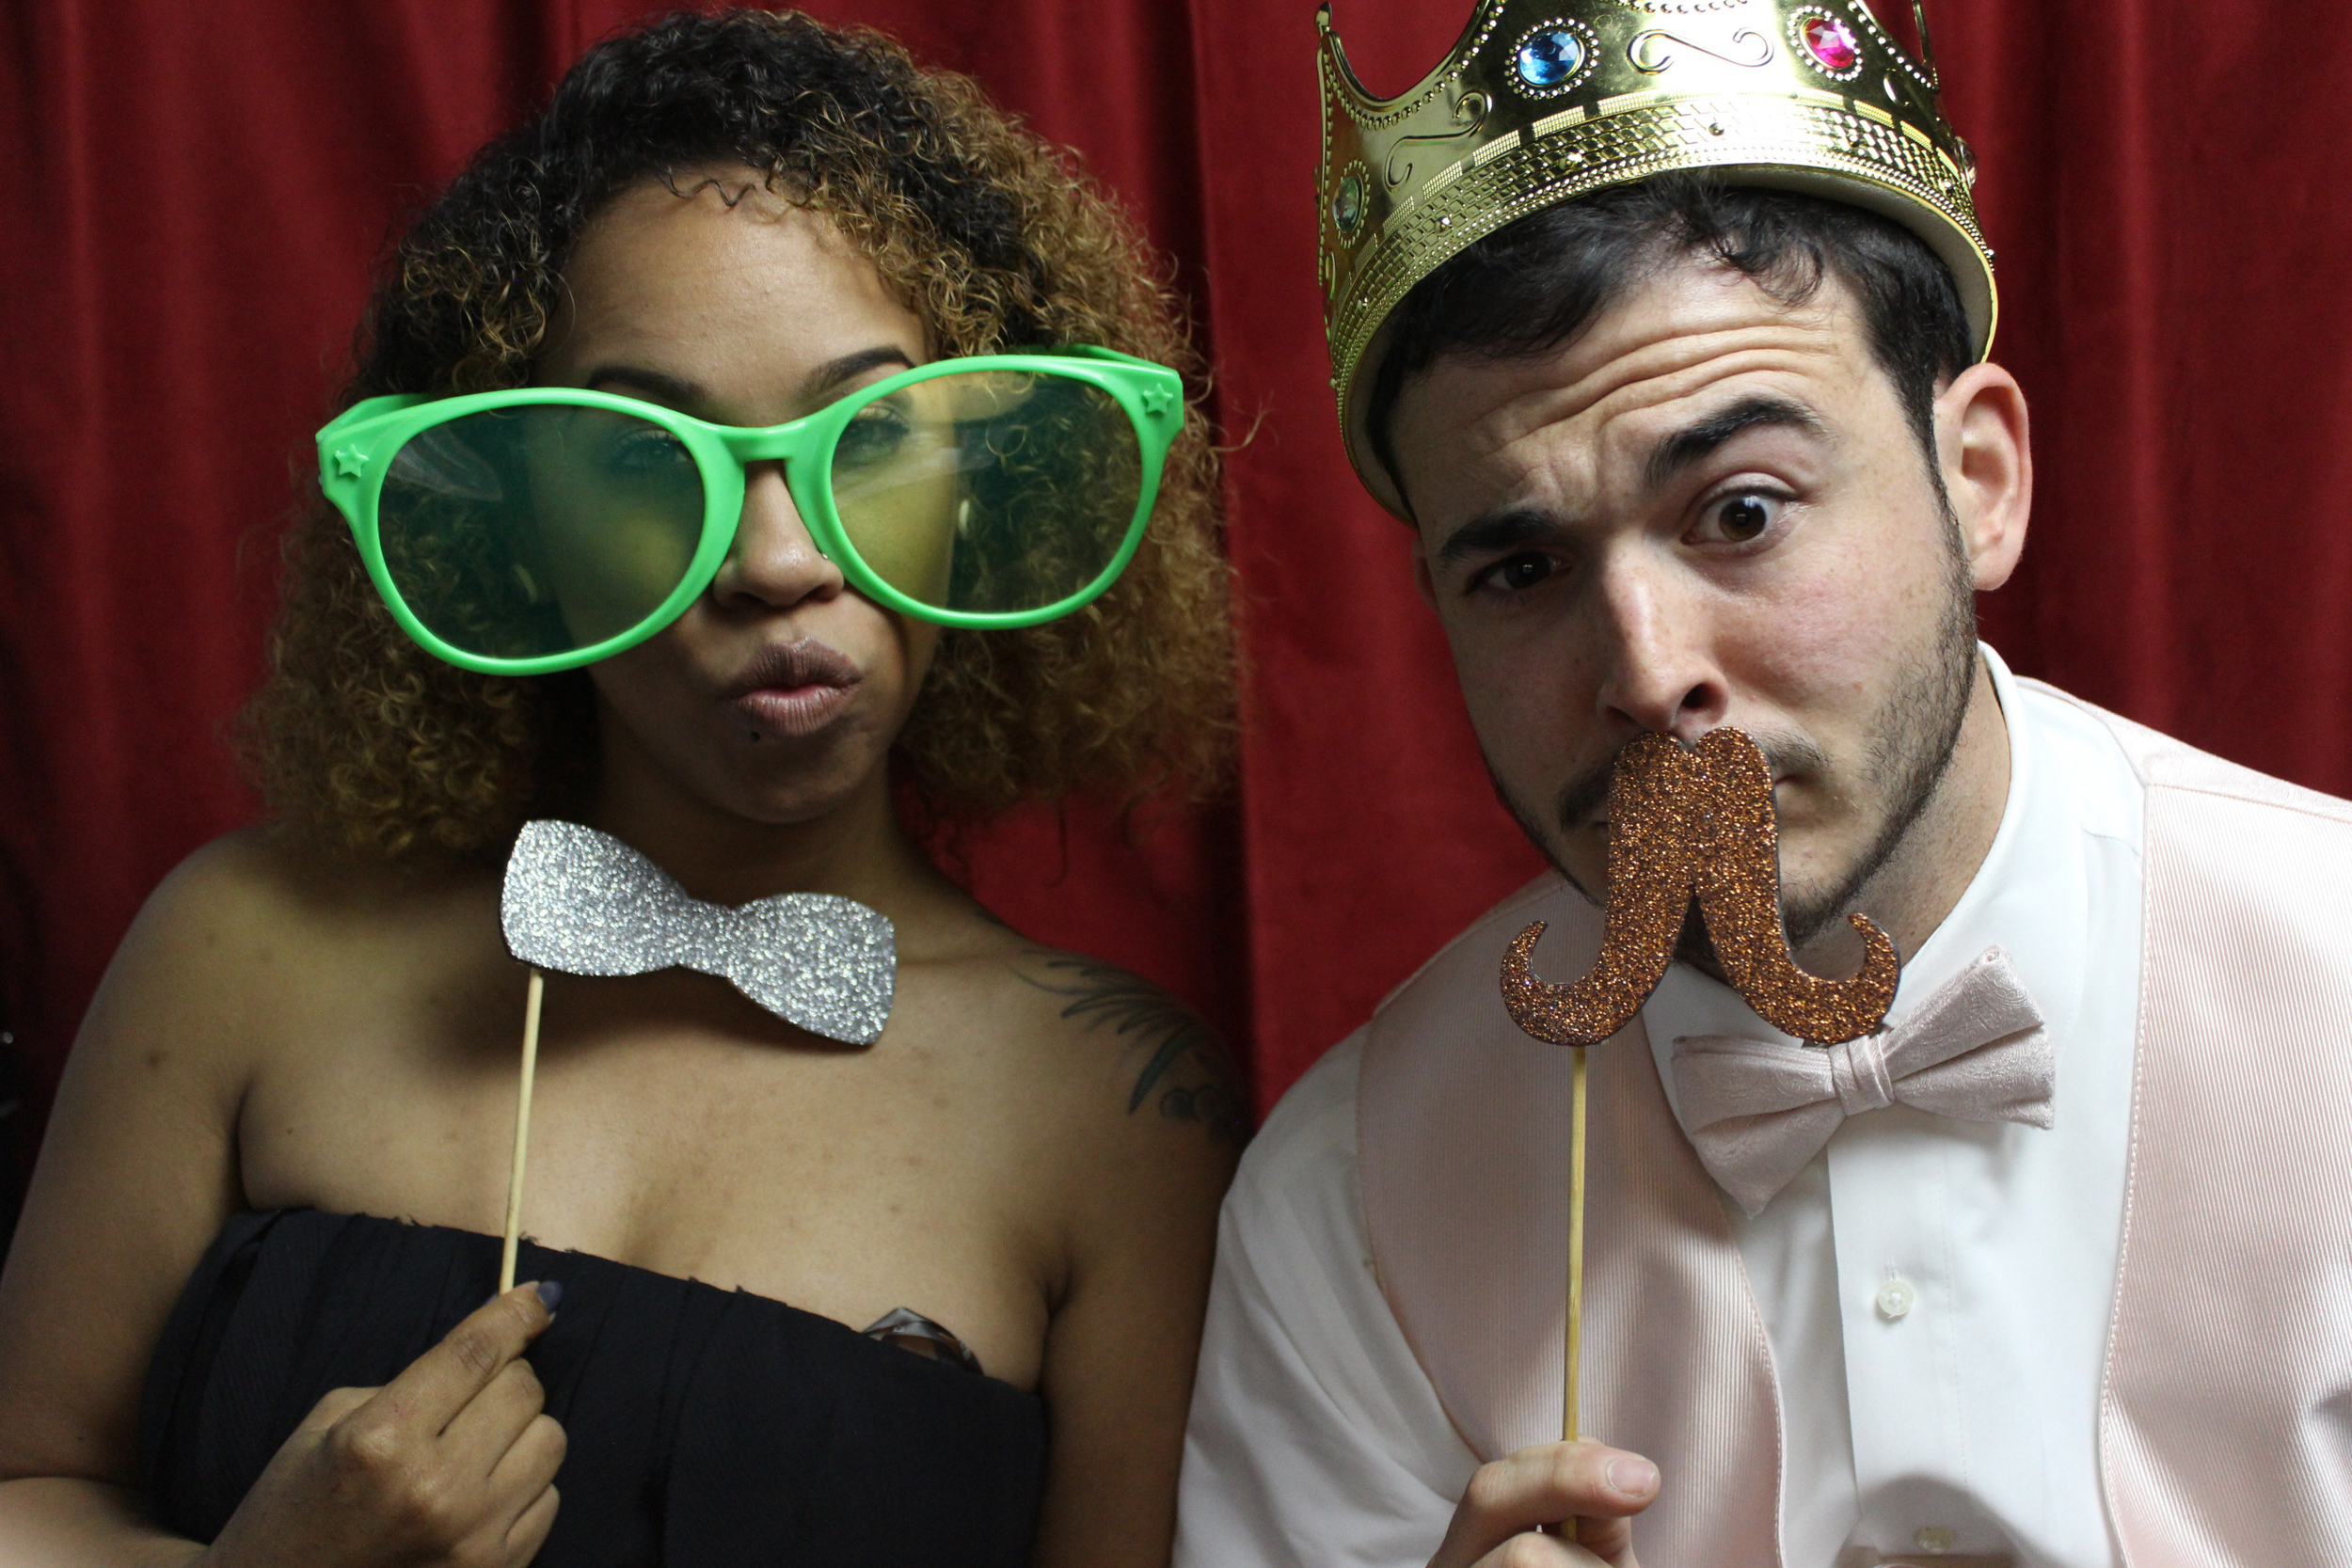 Ann-Marie & Maurice Photo Booth Wedding (141).jpg